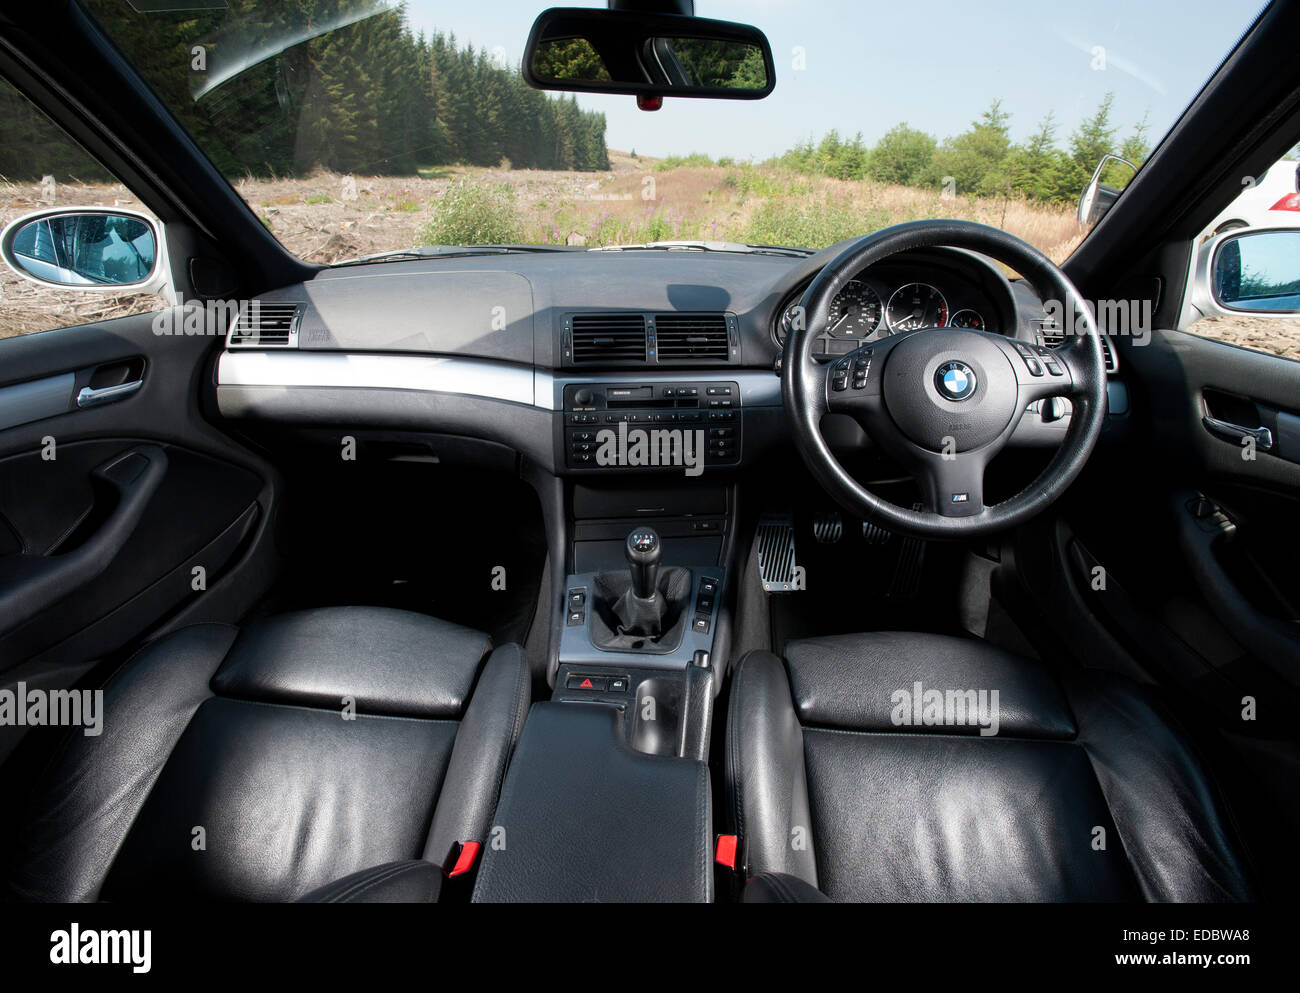 2002 E46 335d BMW 3 Series Interior